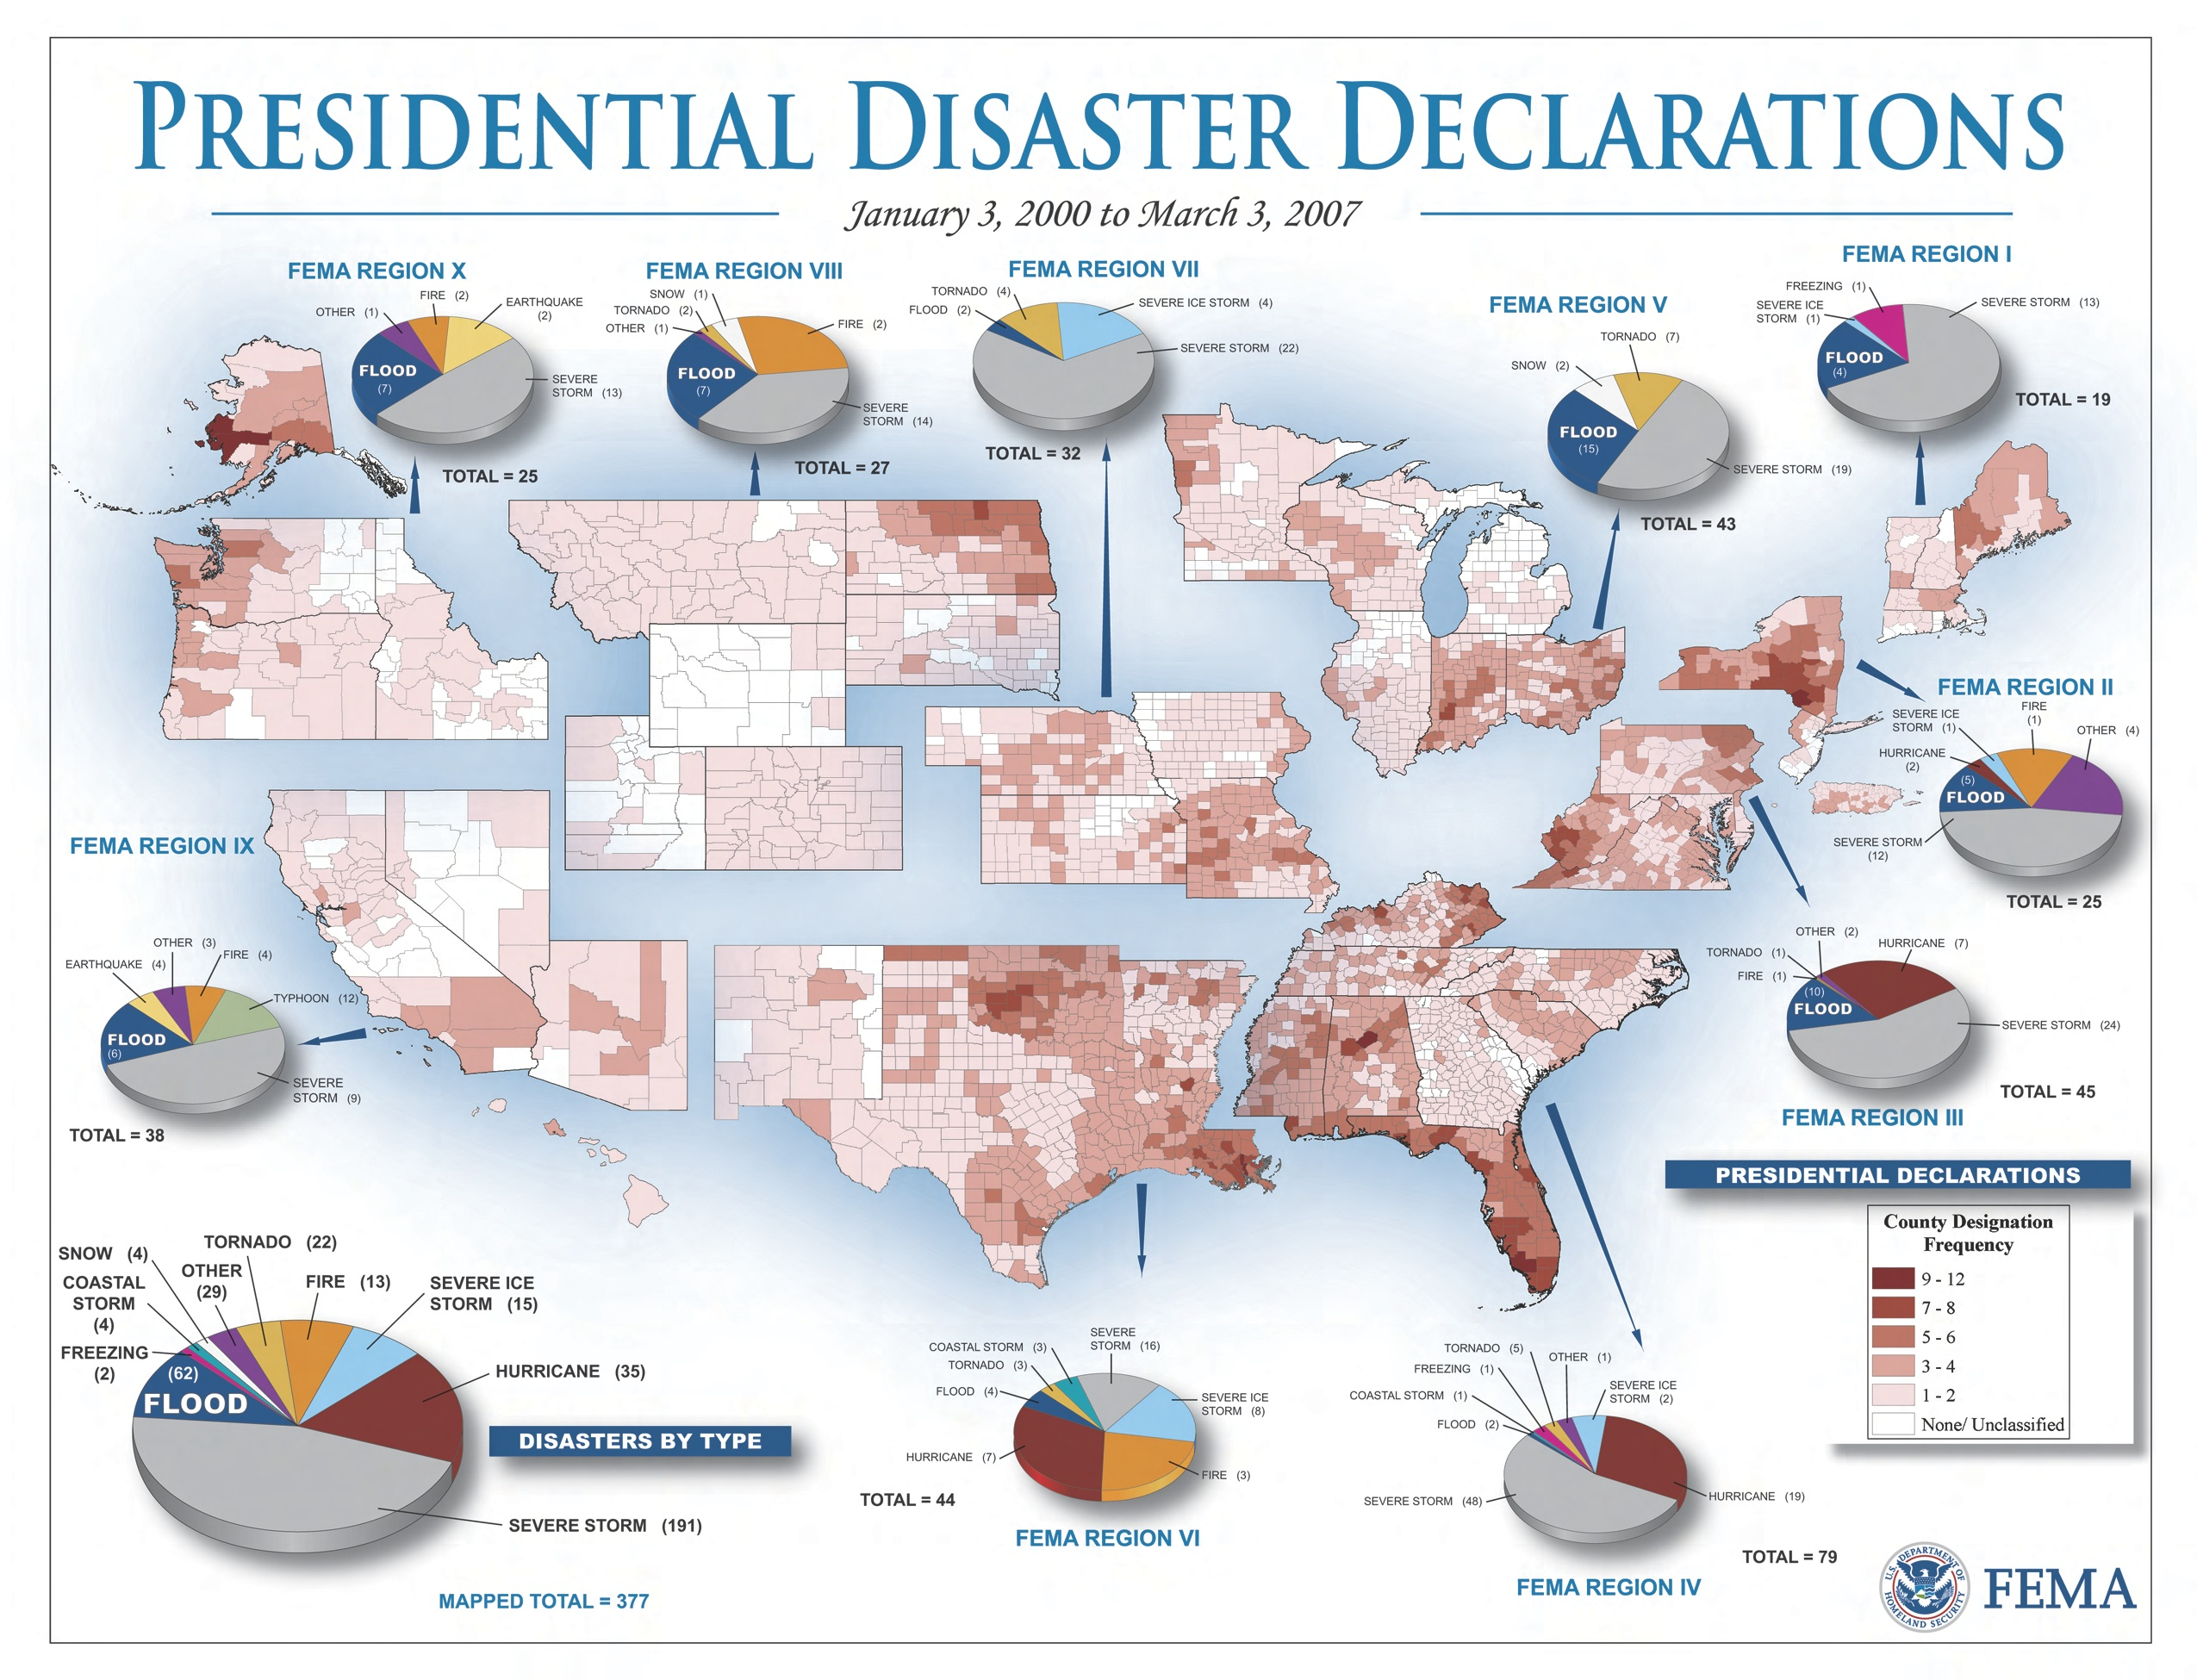 us disaster map geocurrents us disaster risk map tinhatranch emergency apps iphone emergency alerts disaster notification app world natural